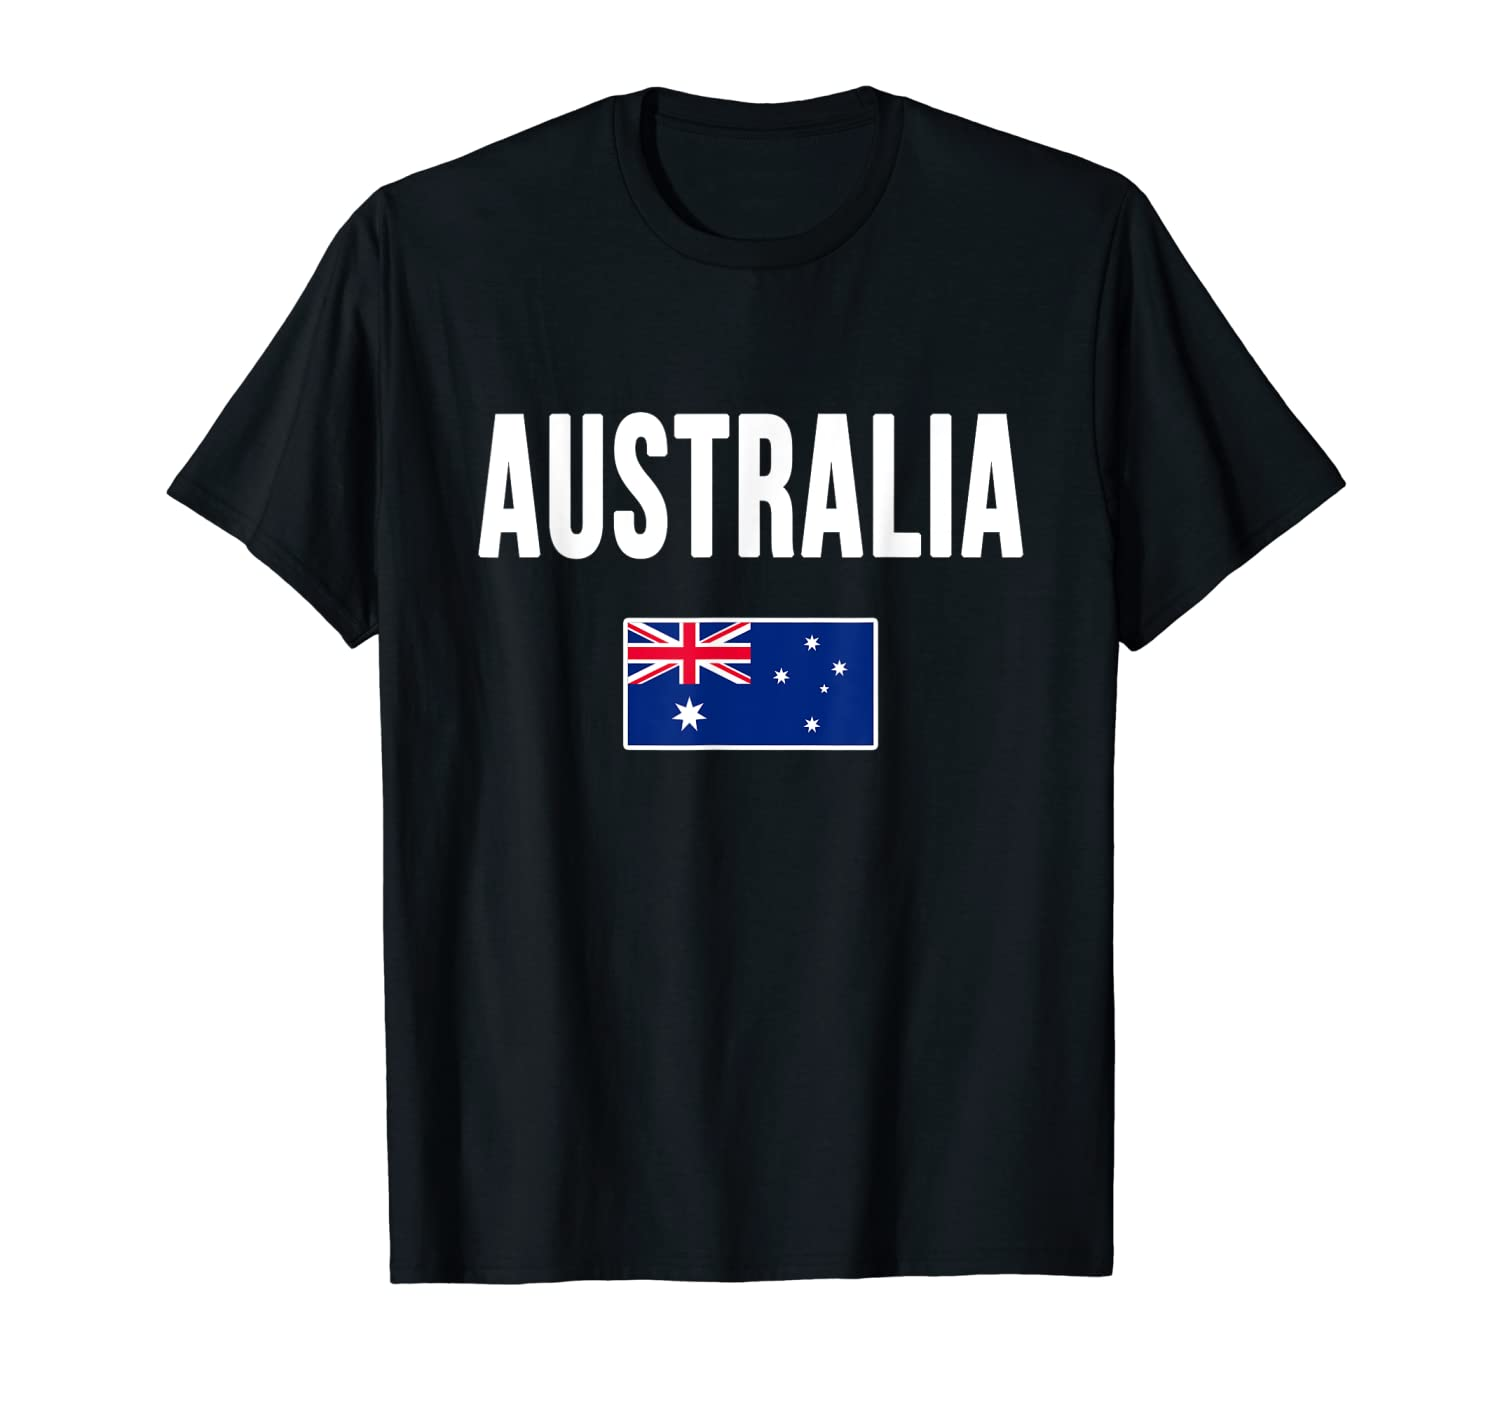 fb8570ffe Amazon.com: Australia T-shirt Australian Flag Gift Souvenir Love: Clothing